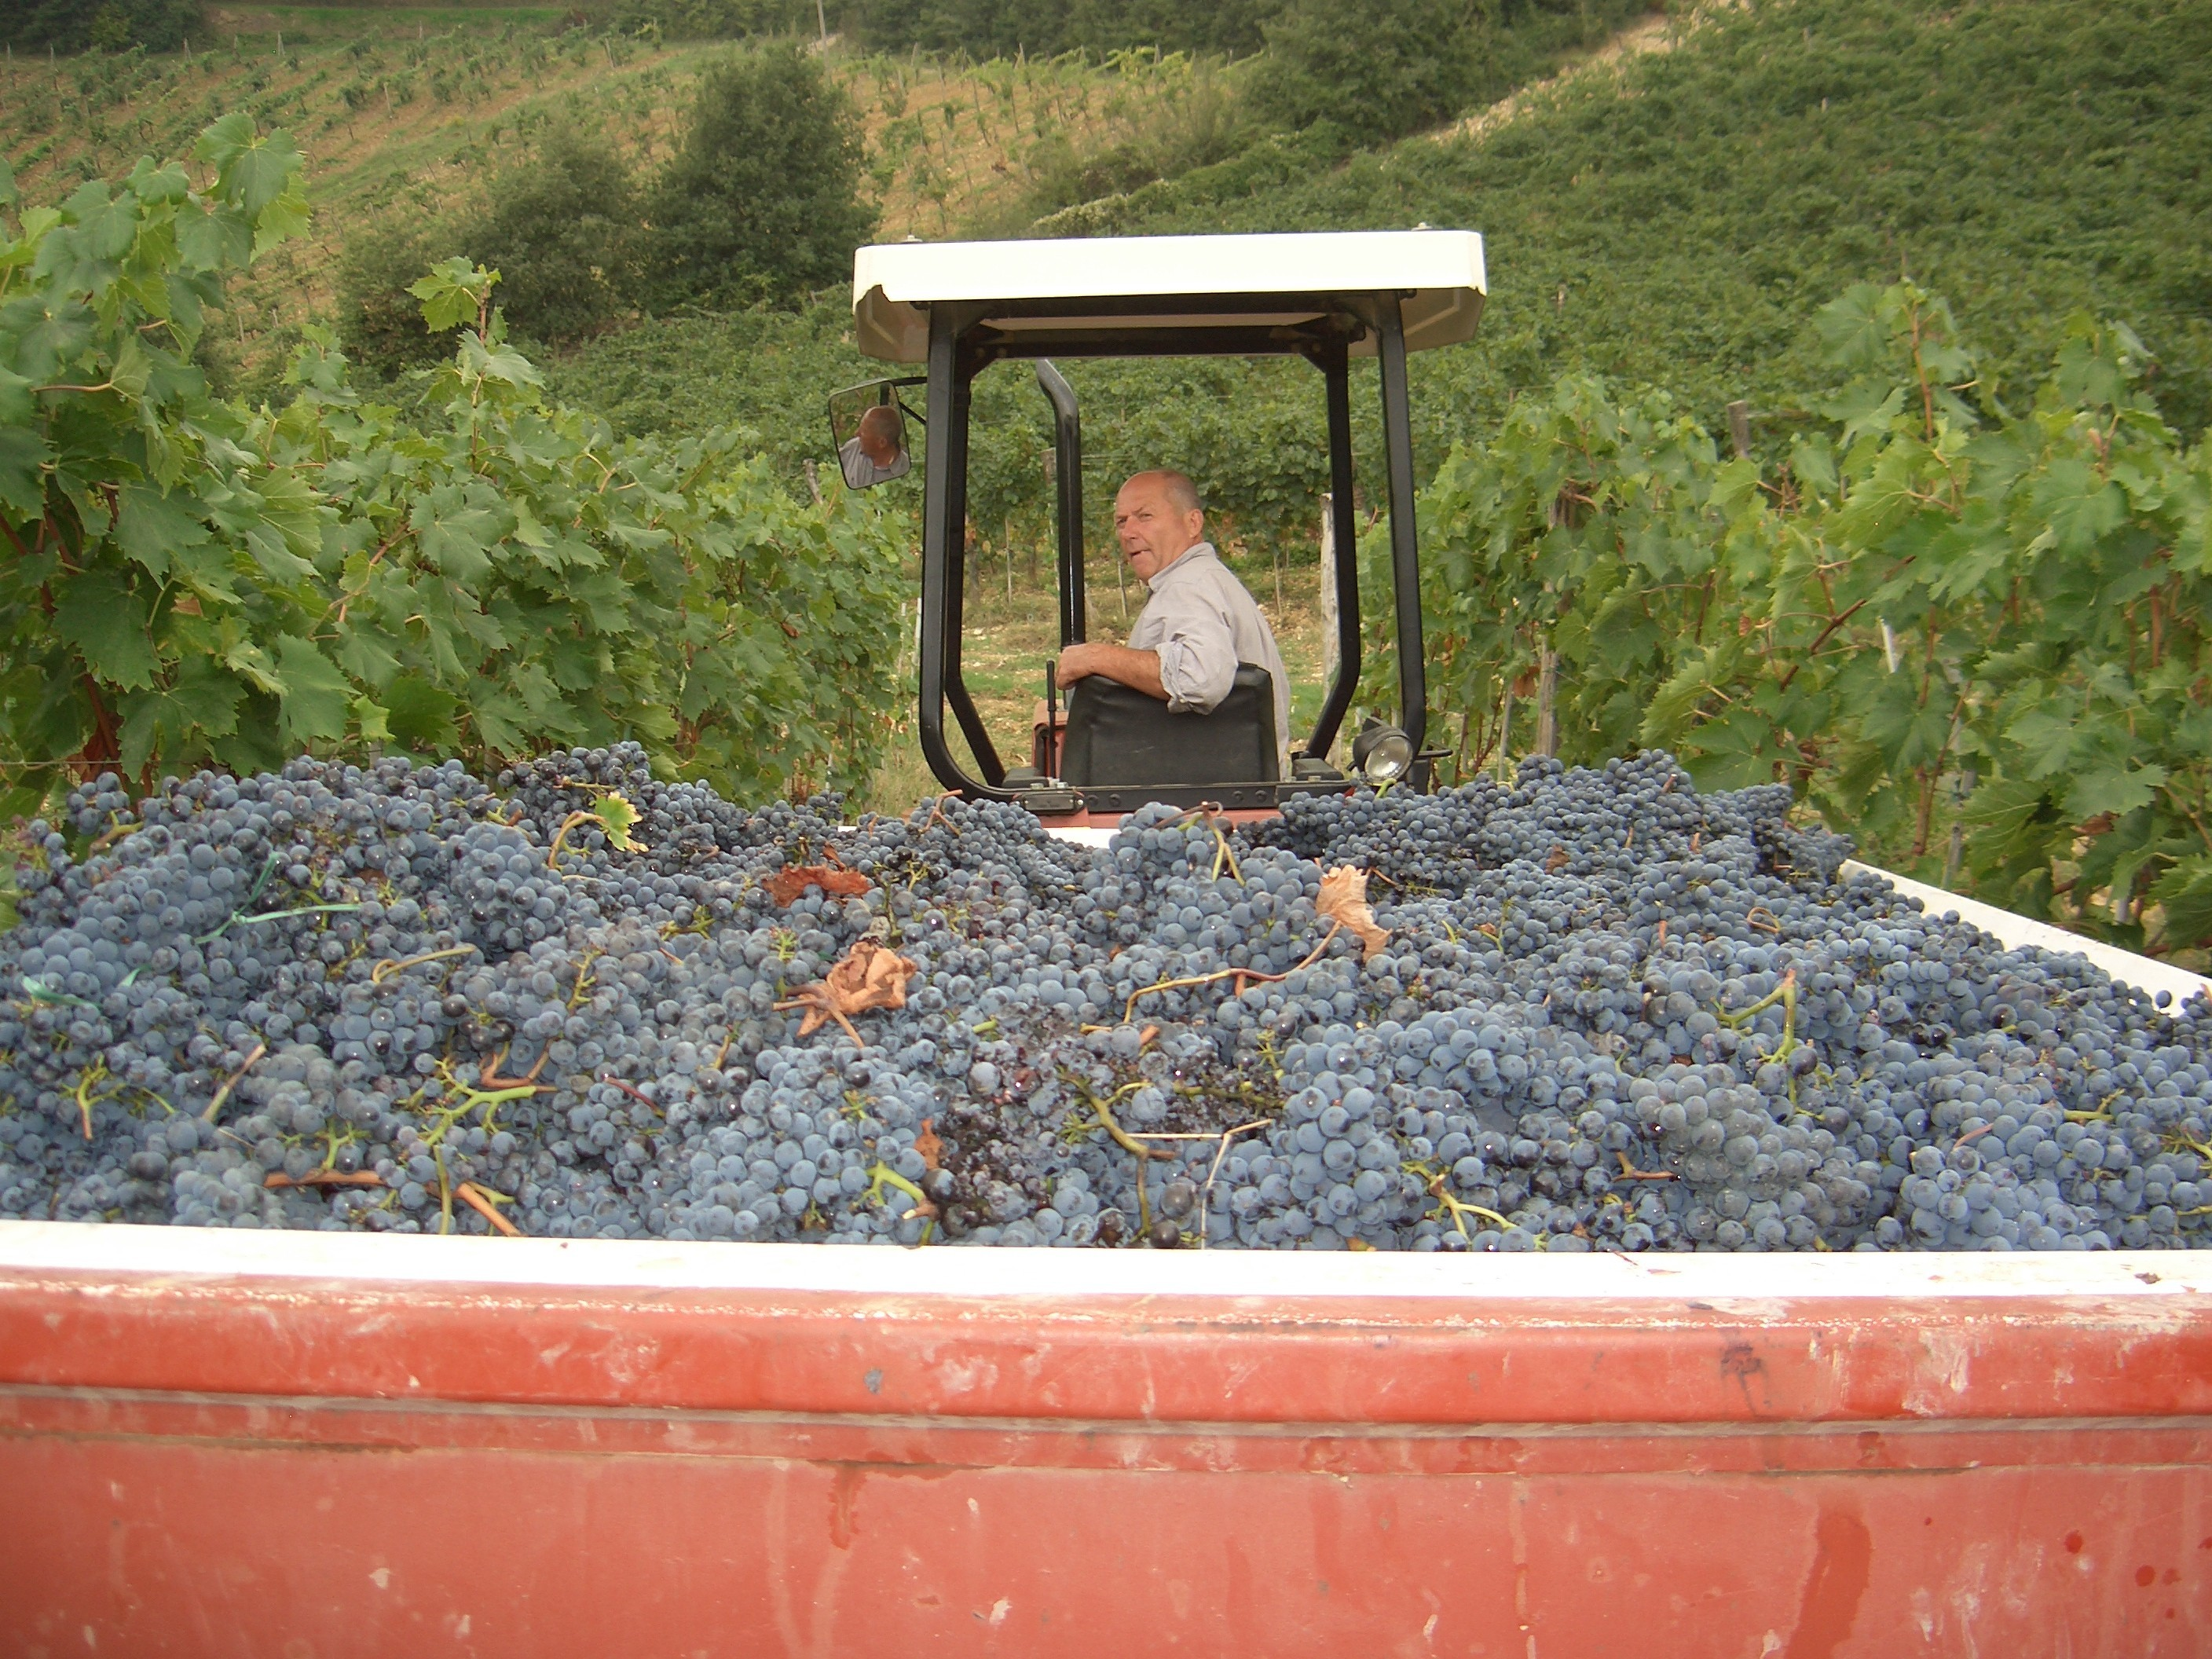 Borgo Argenina :: La Vendemmia & Grape Harvest in Chianti Classico